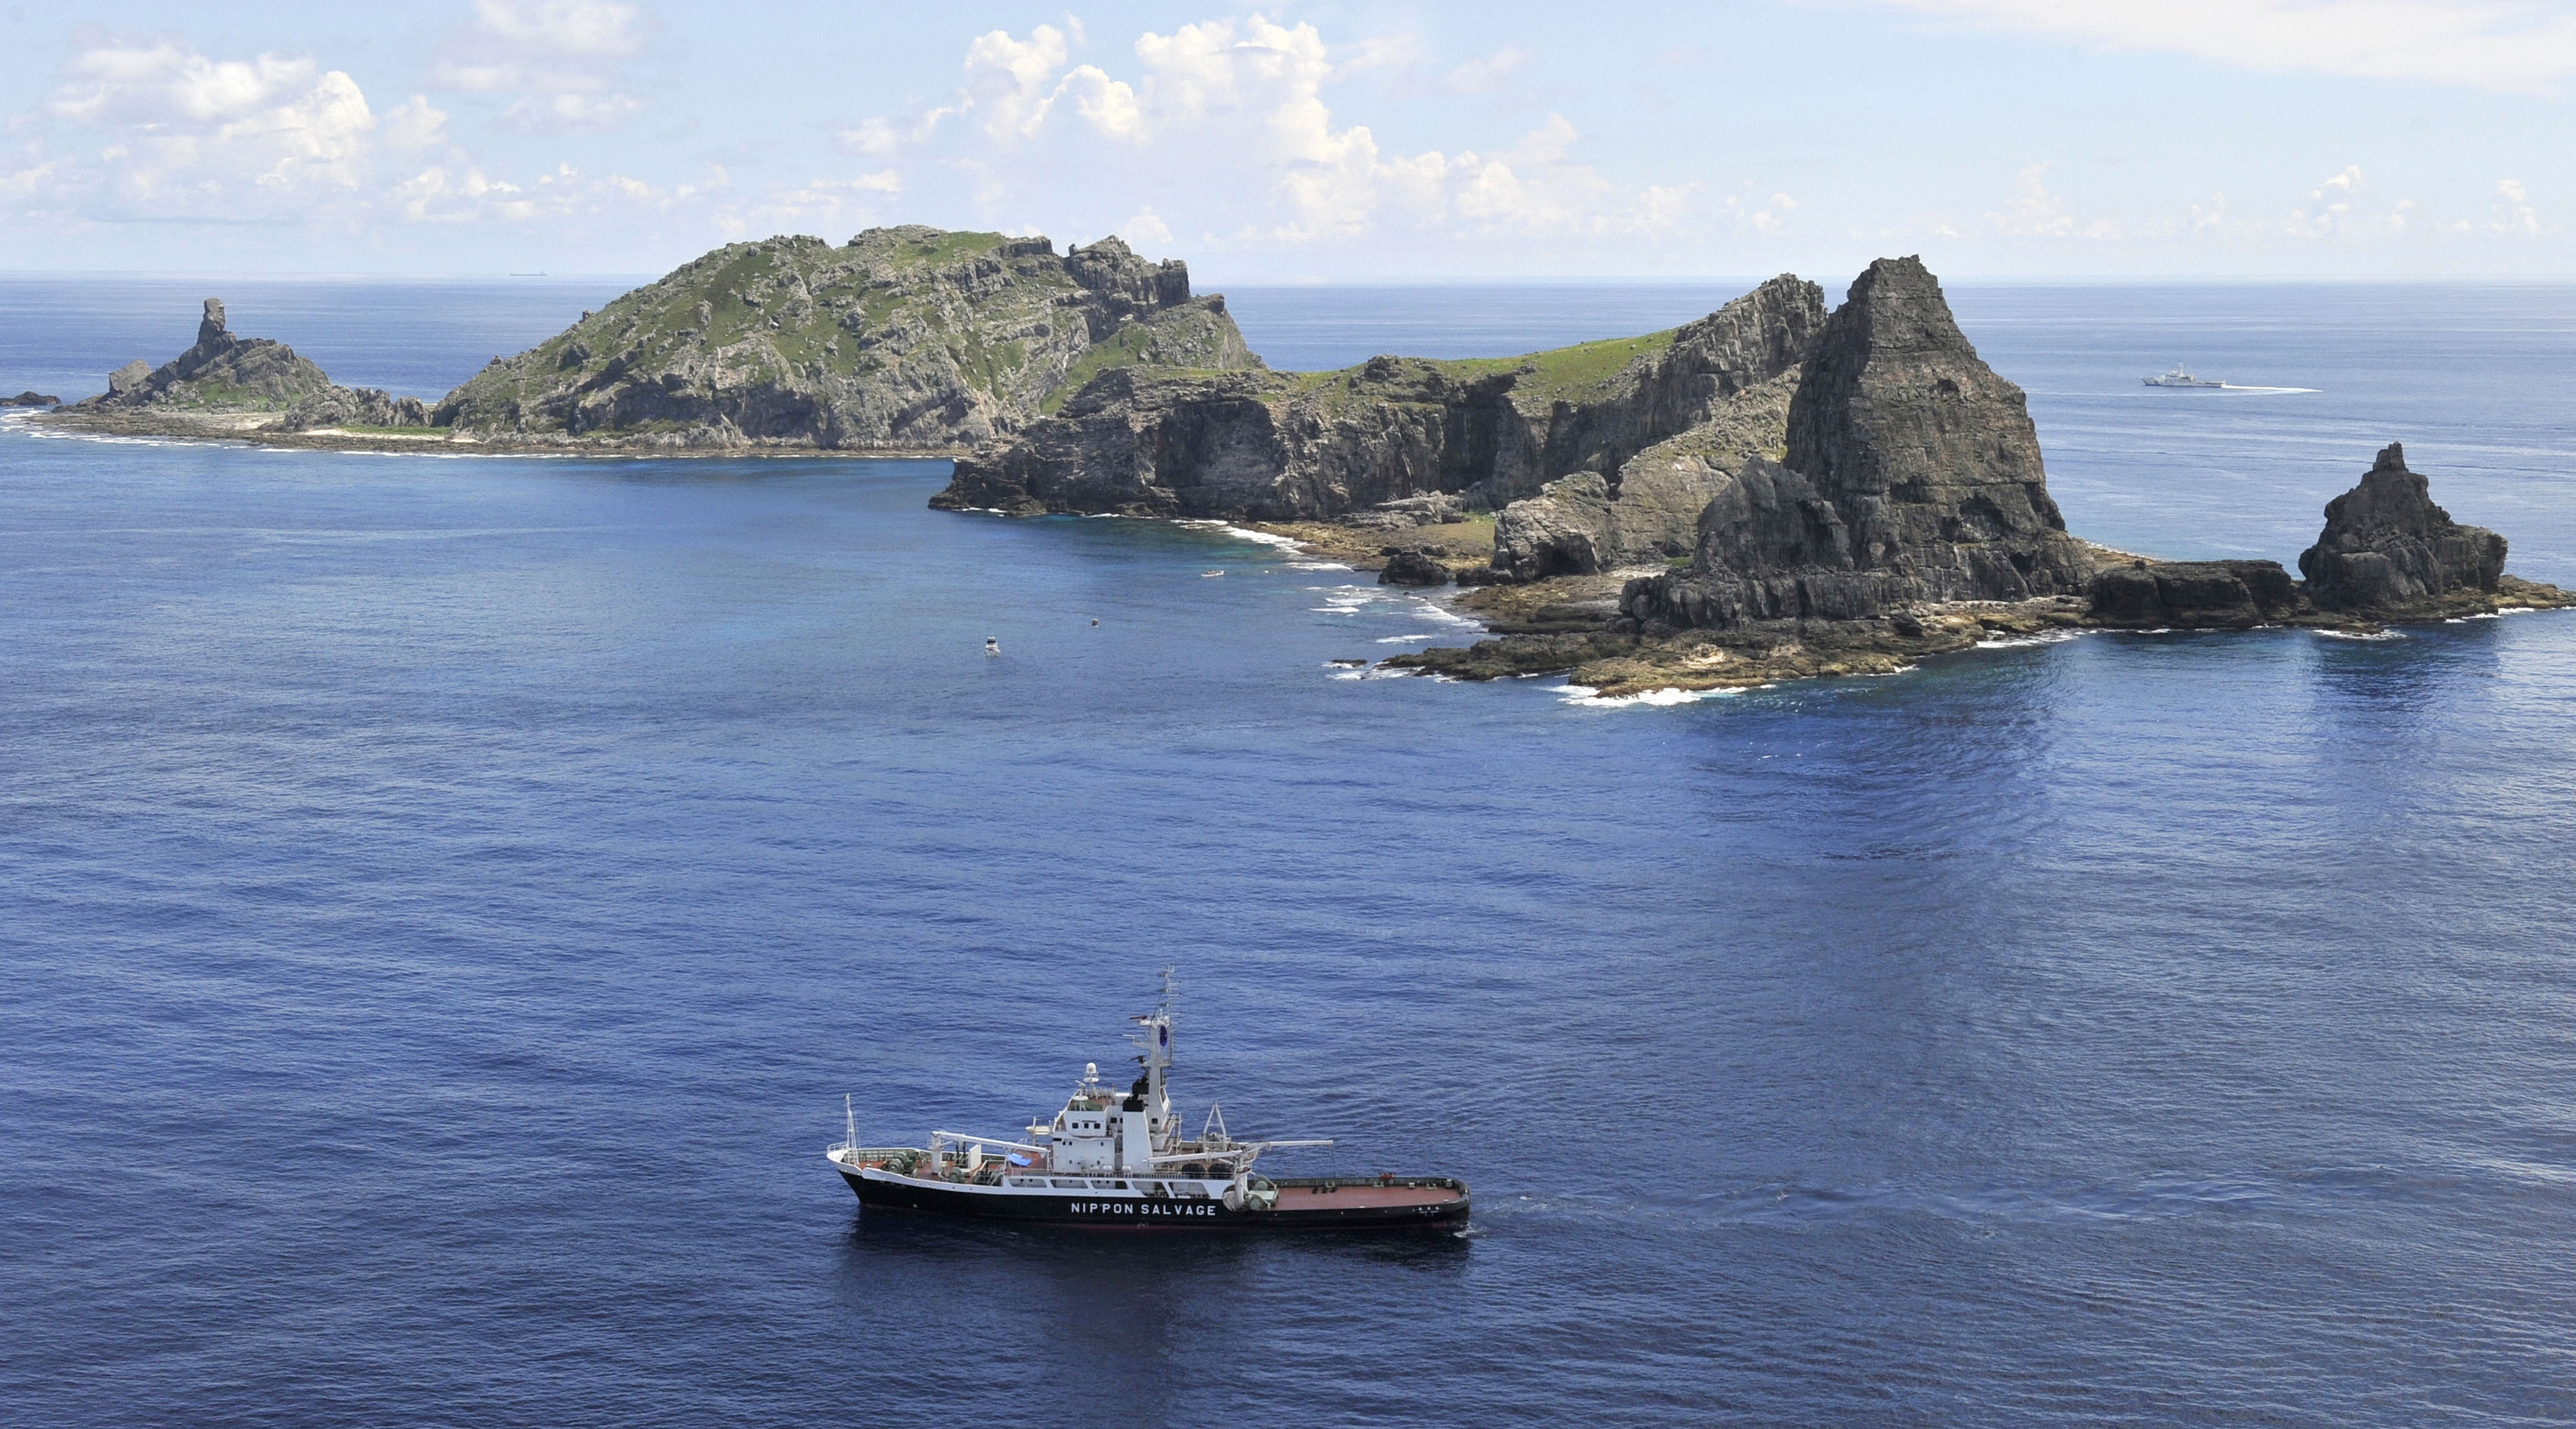 A vessel sails around a group of disputed islands known as Senkaku in Japan and Diaoyu in China in the East China Sea